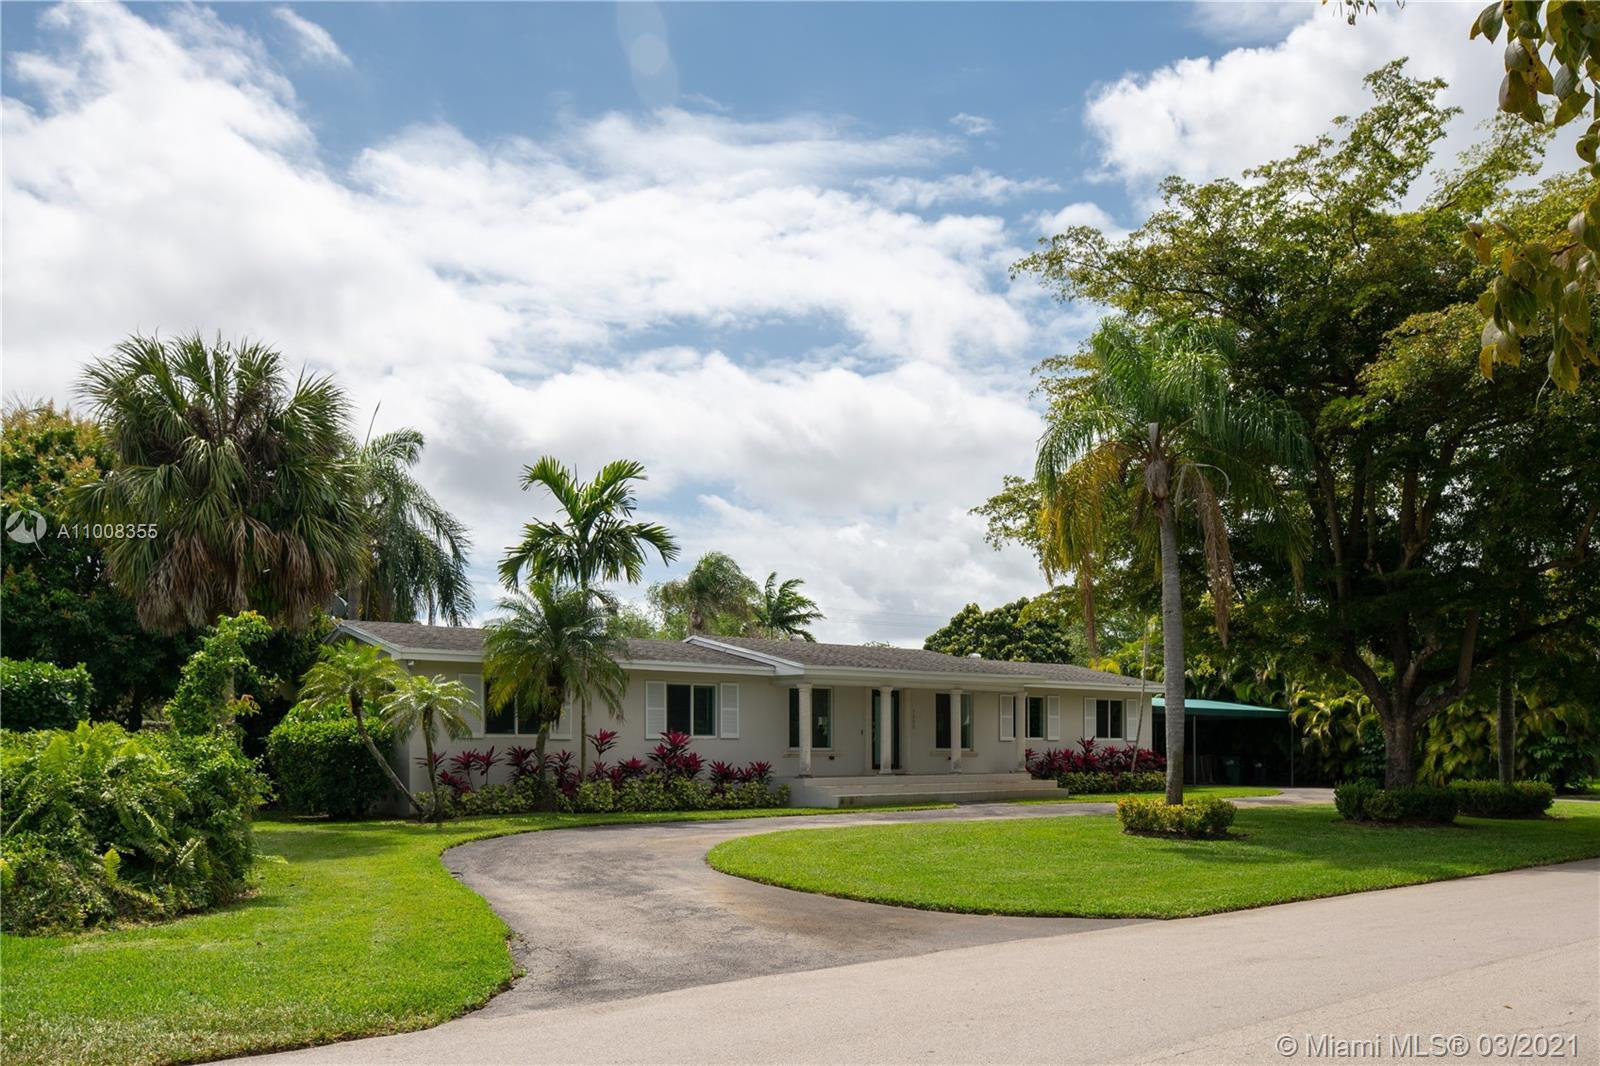 Don't look any further, you have found your new HOME!!   This beautiful home has  over 2800 sf of l